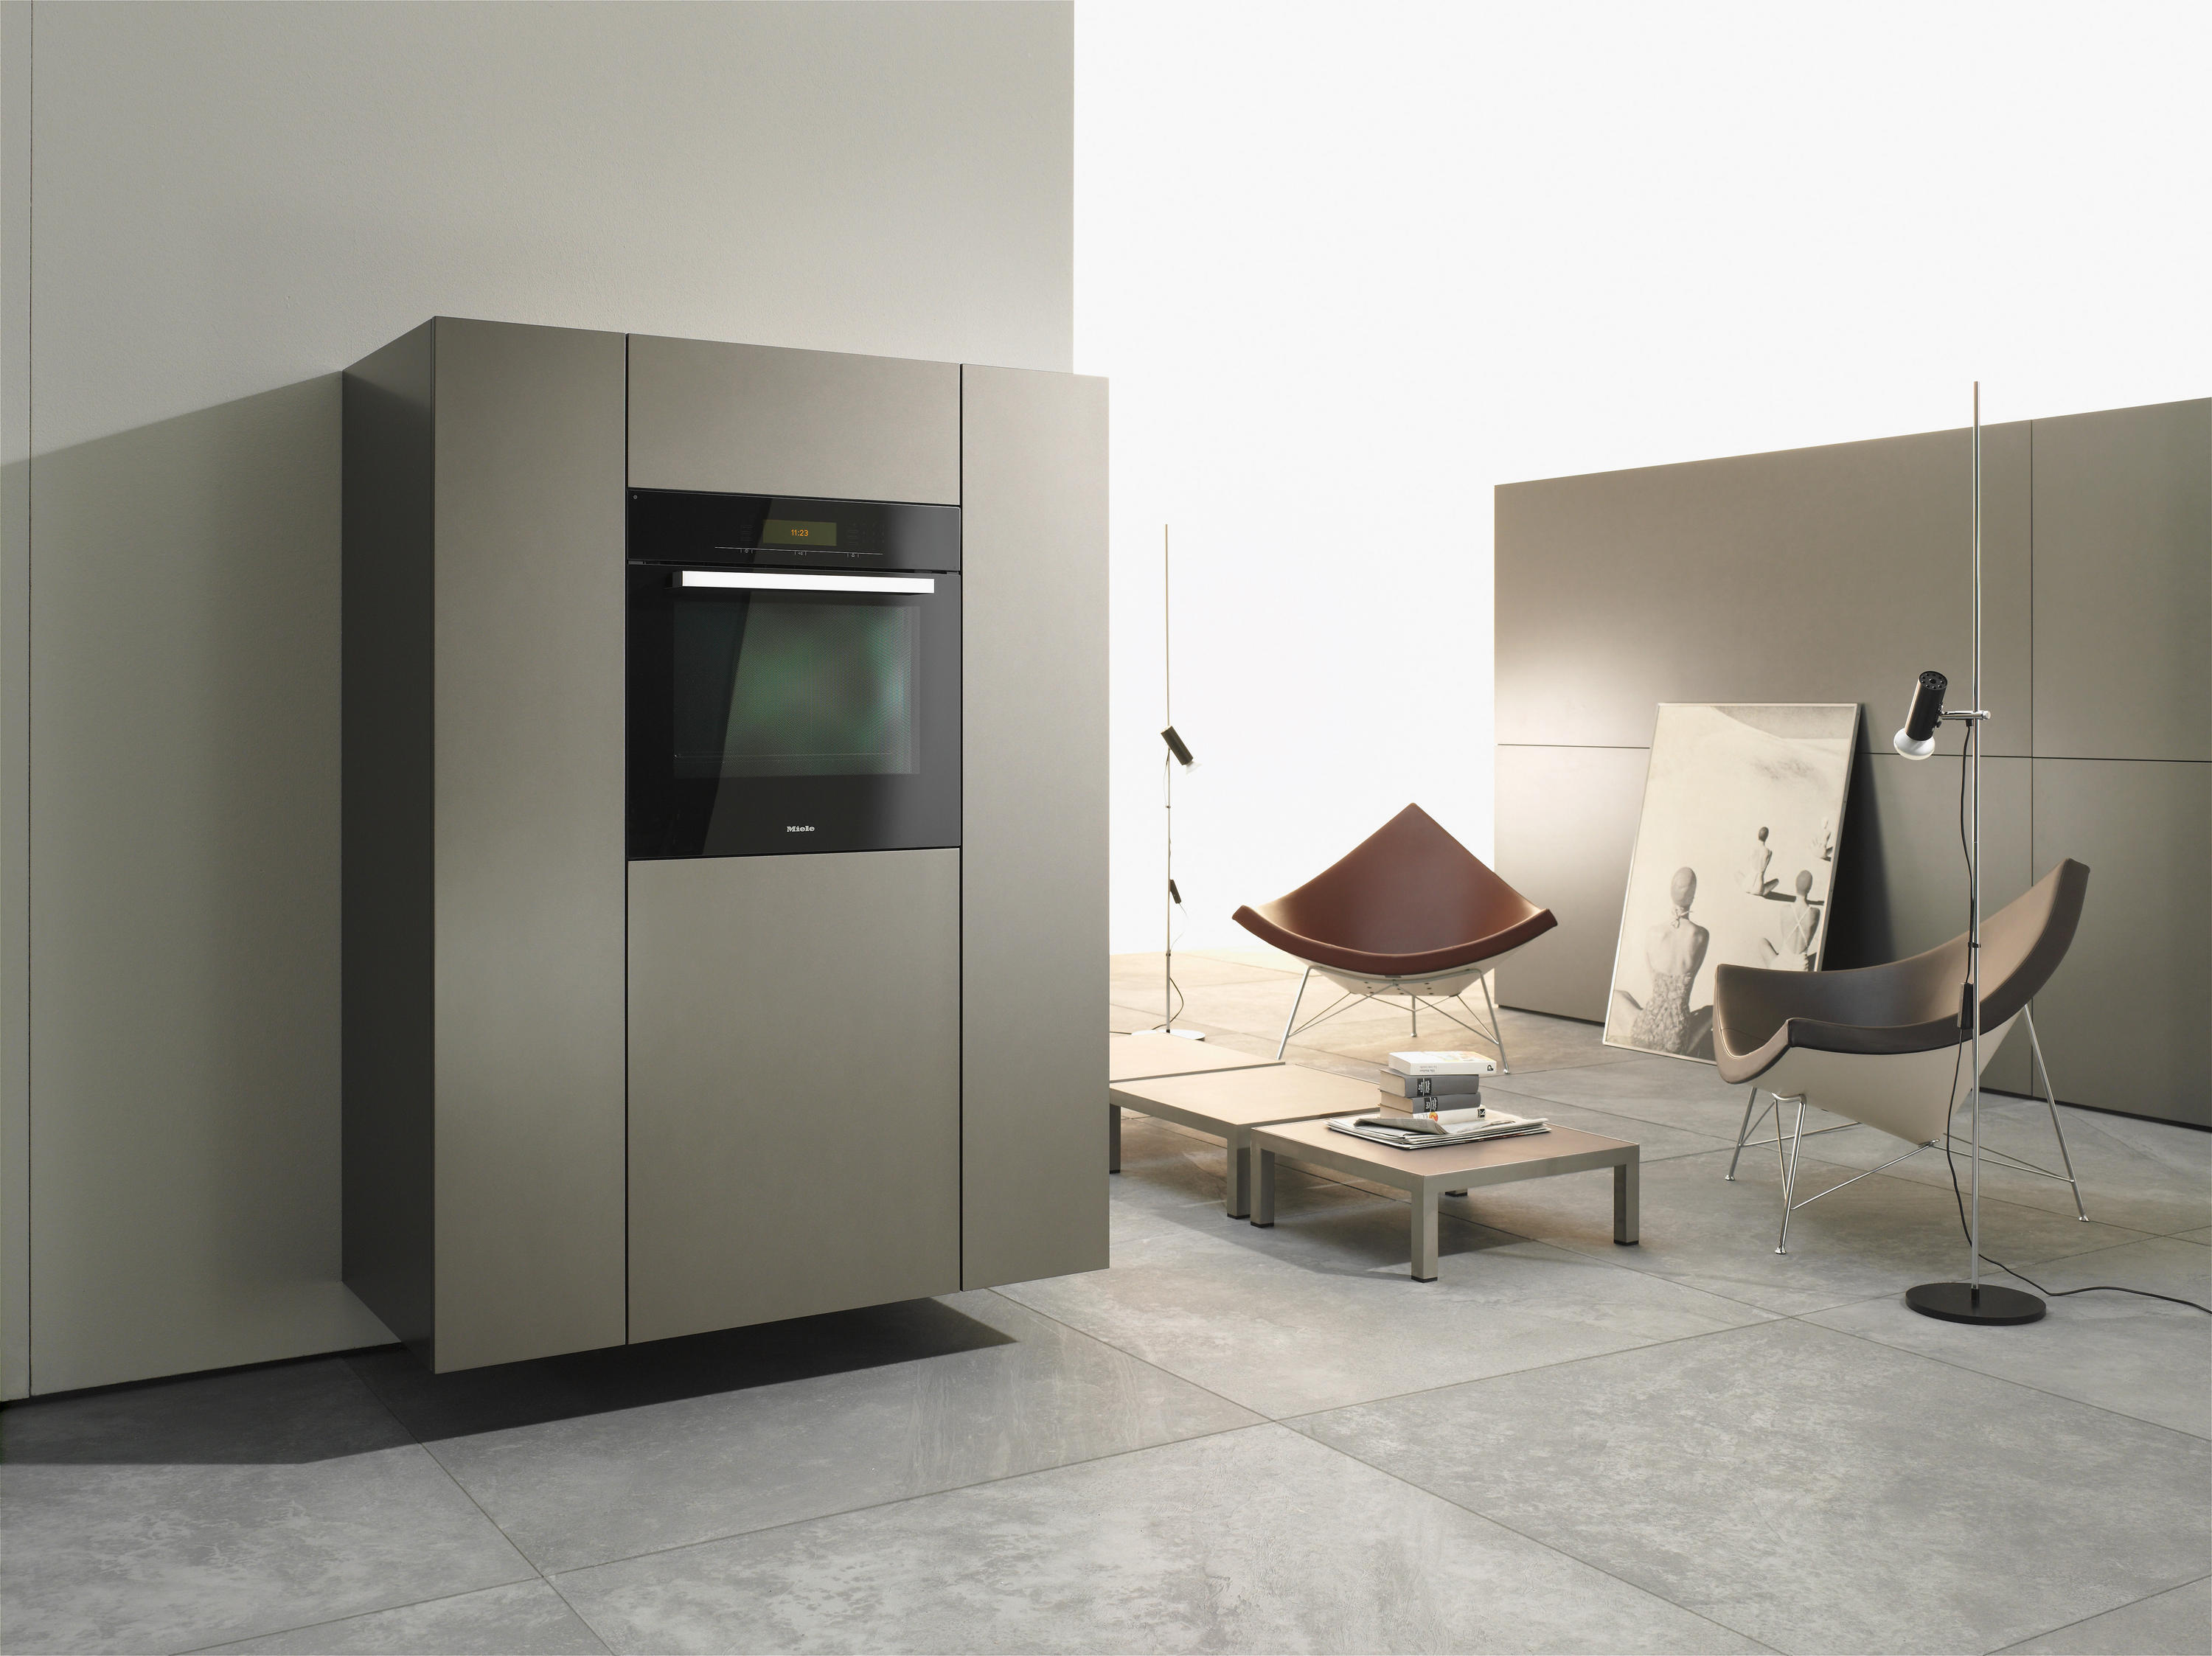 h 5681 bp einbau backofen back fen von miele architonic. Black Bedroom Furniture Sets. Home Design Ideas